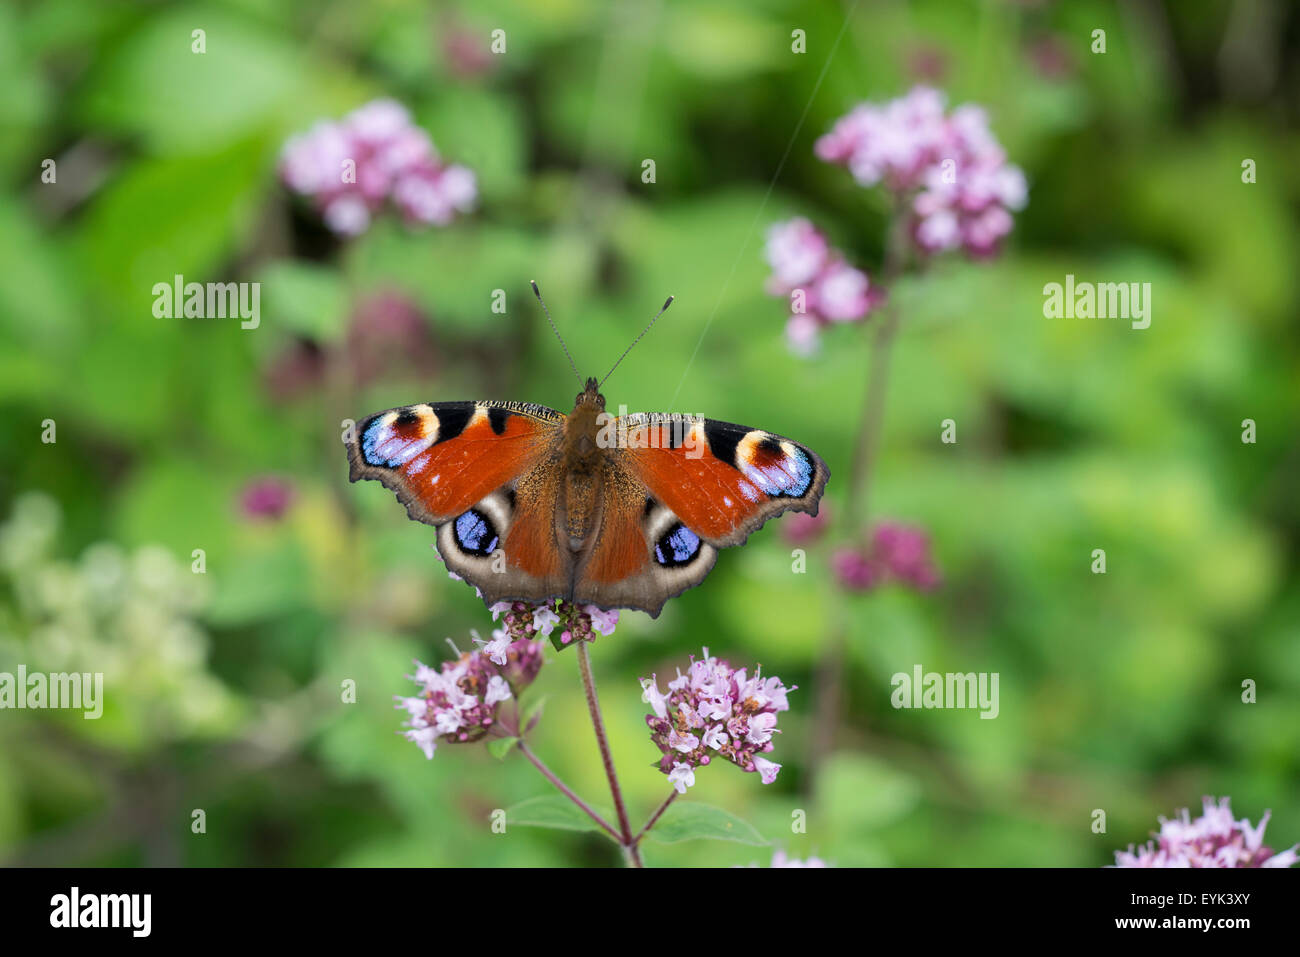 Peacock butterlfy (Inachis io) feeding on nectar. - Stock Image